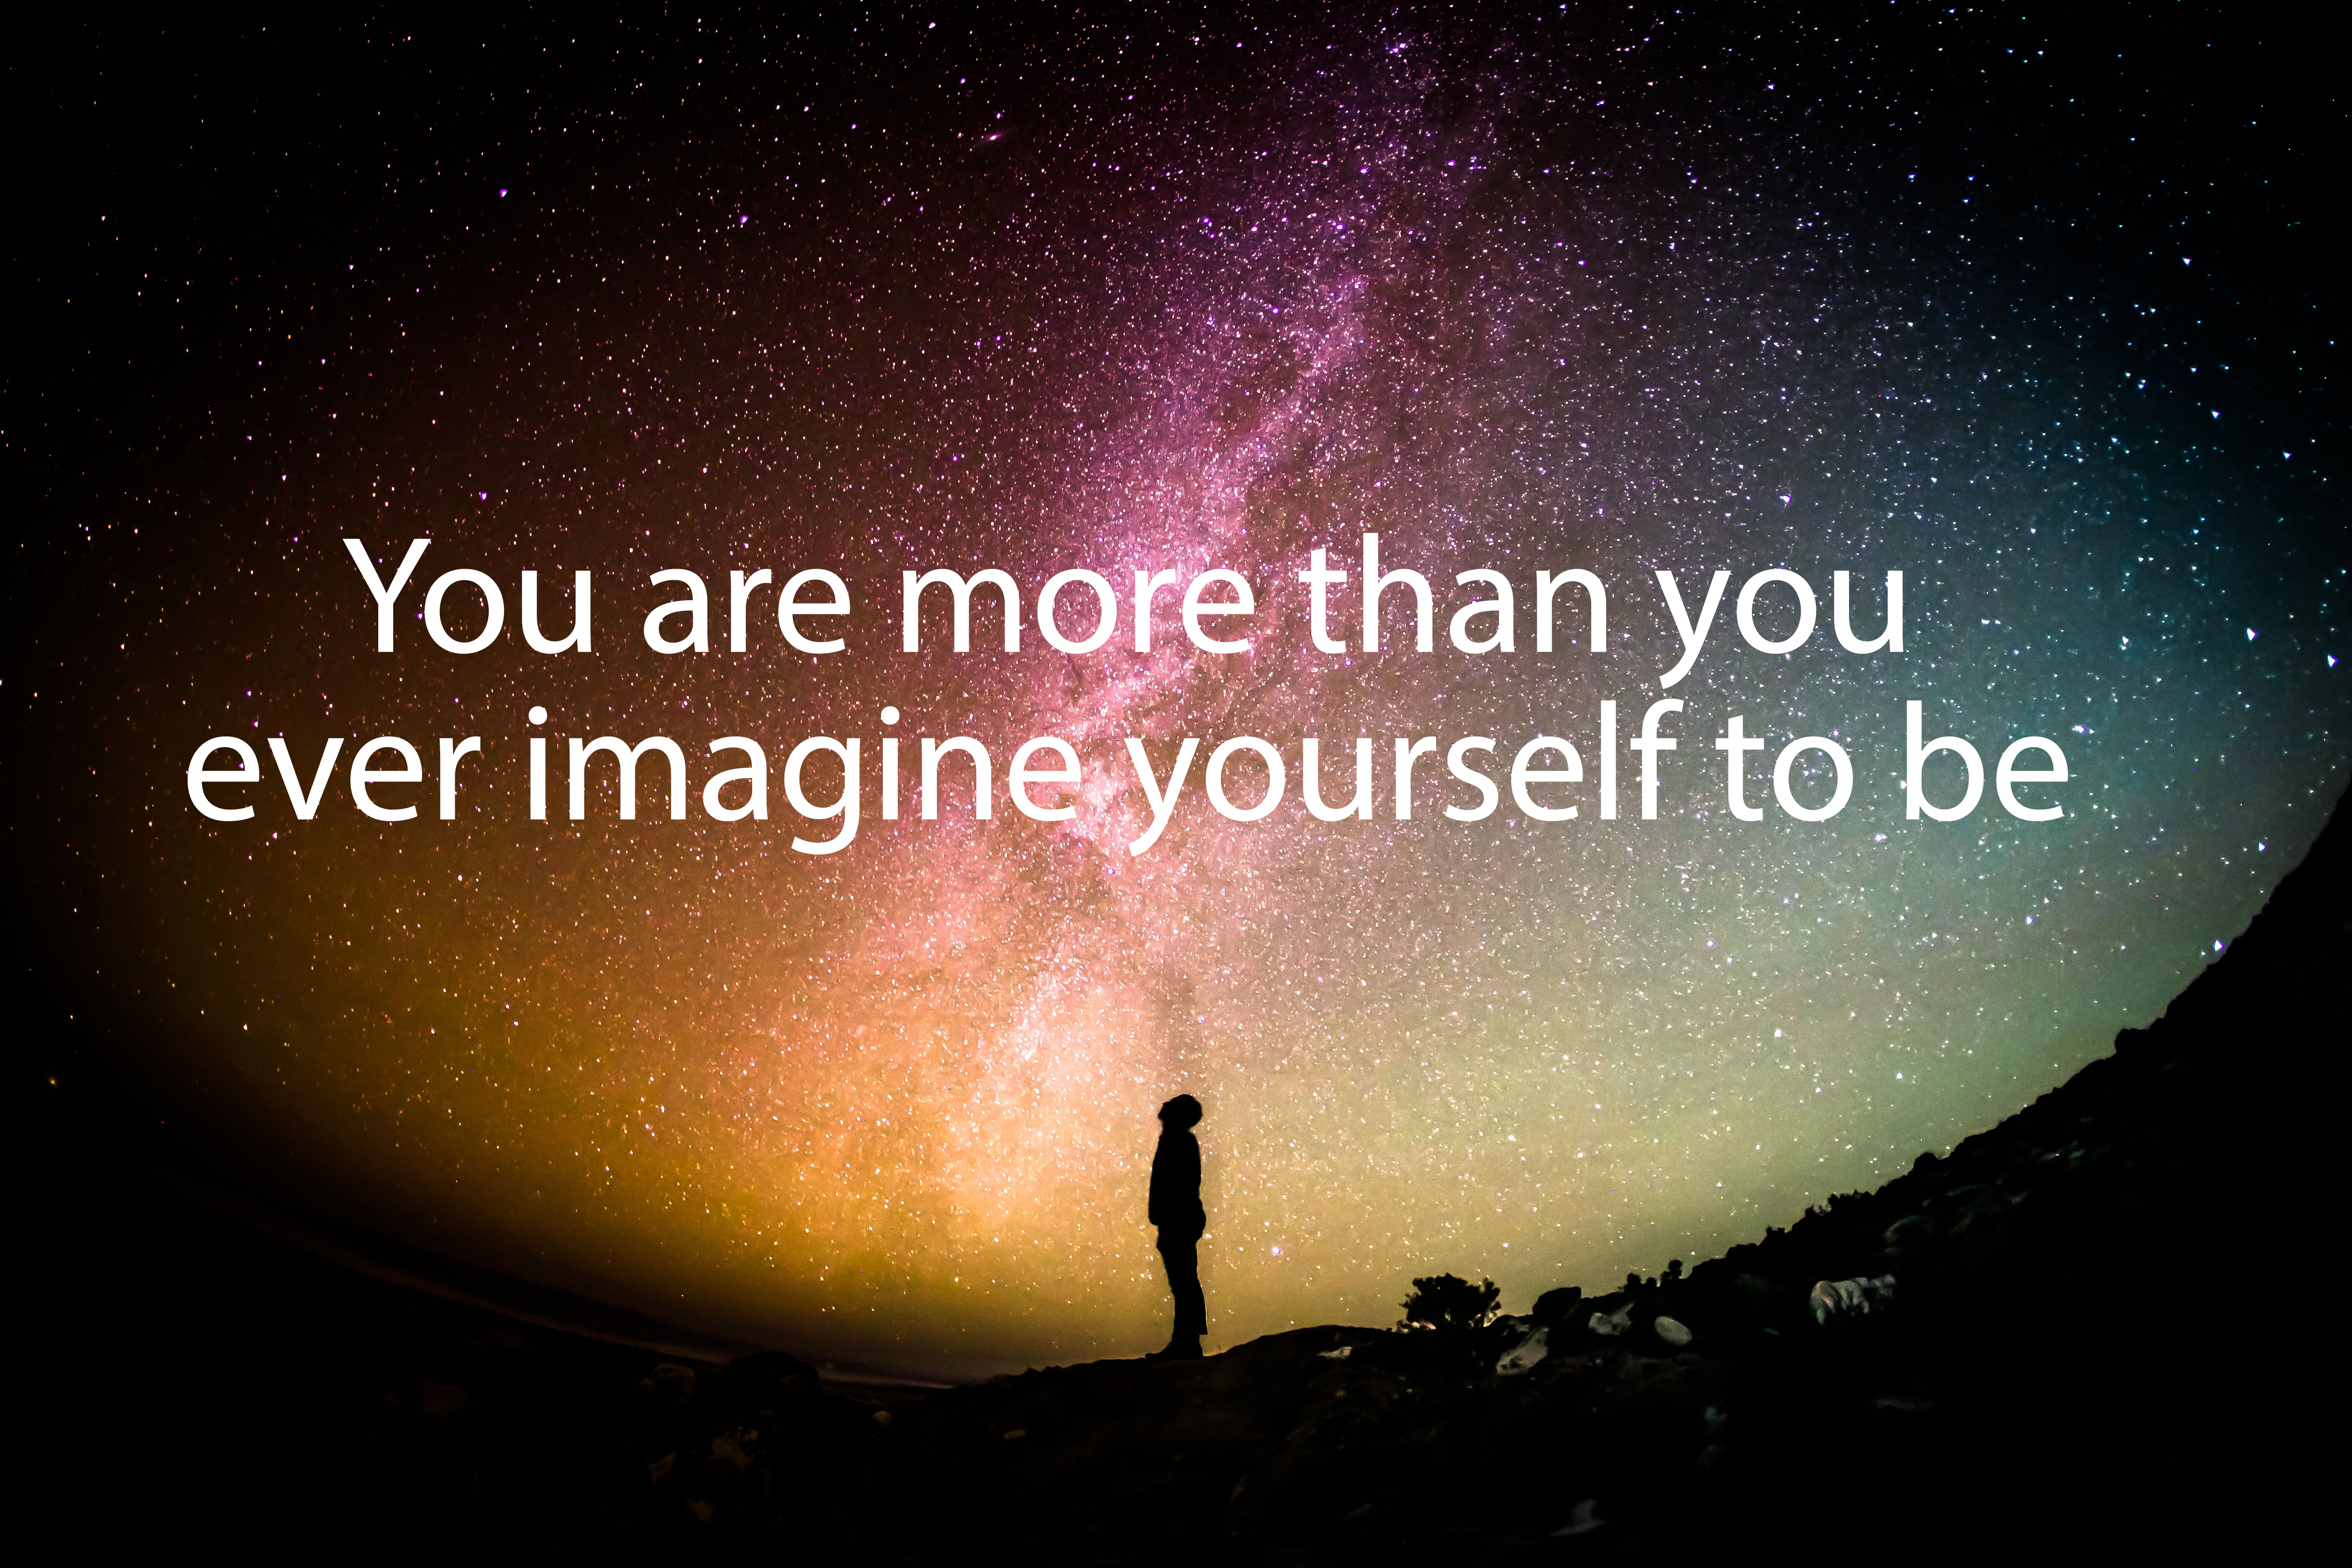 [image] You Are More Than You Ever Imagine Yourself To Be